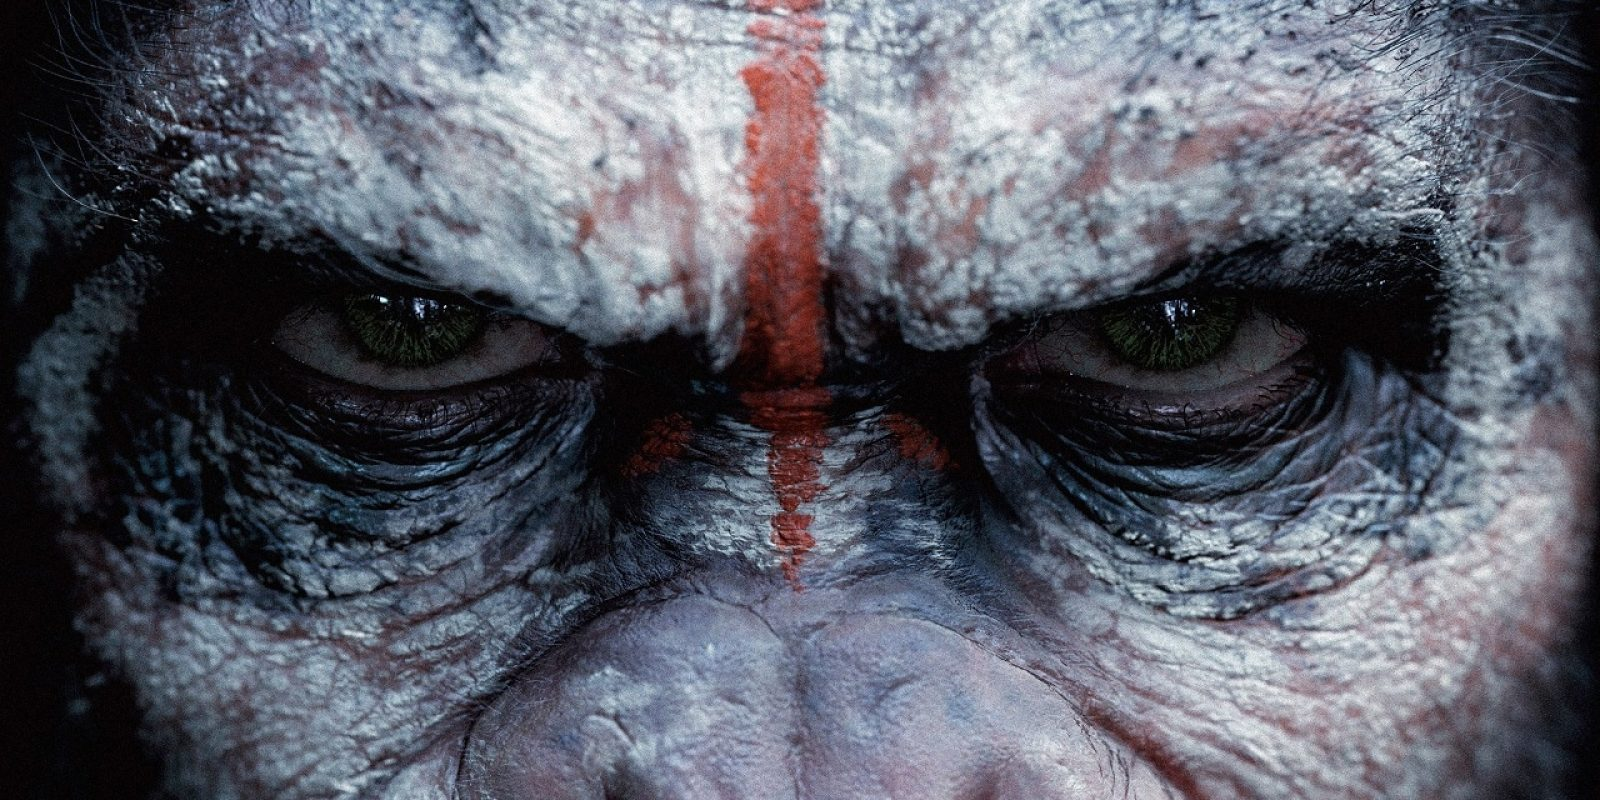 caesar-in-dawn-of-the-planet-of-the-apes-wallpaper_u925